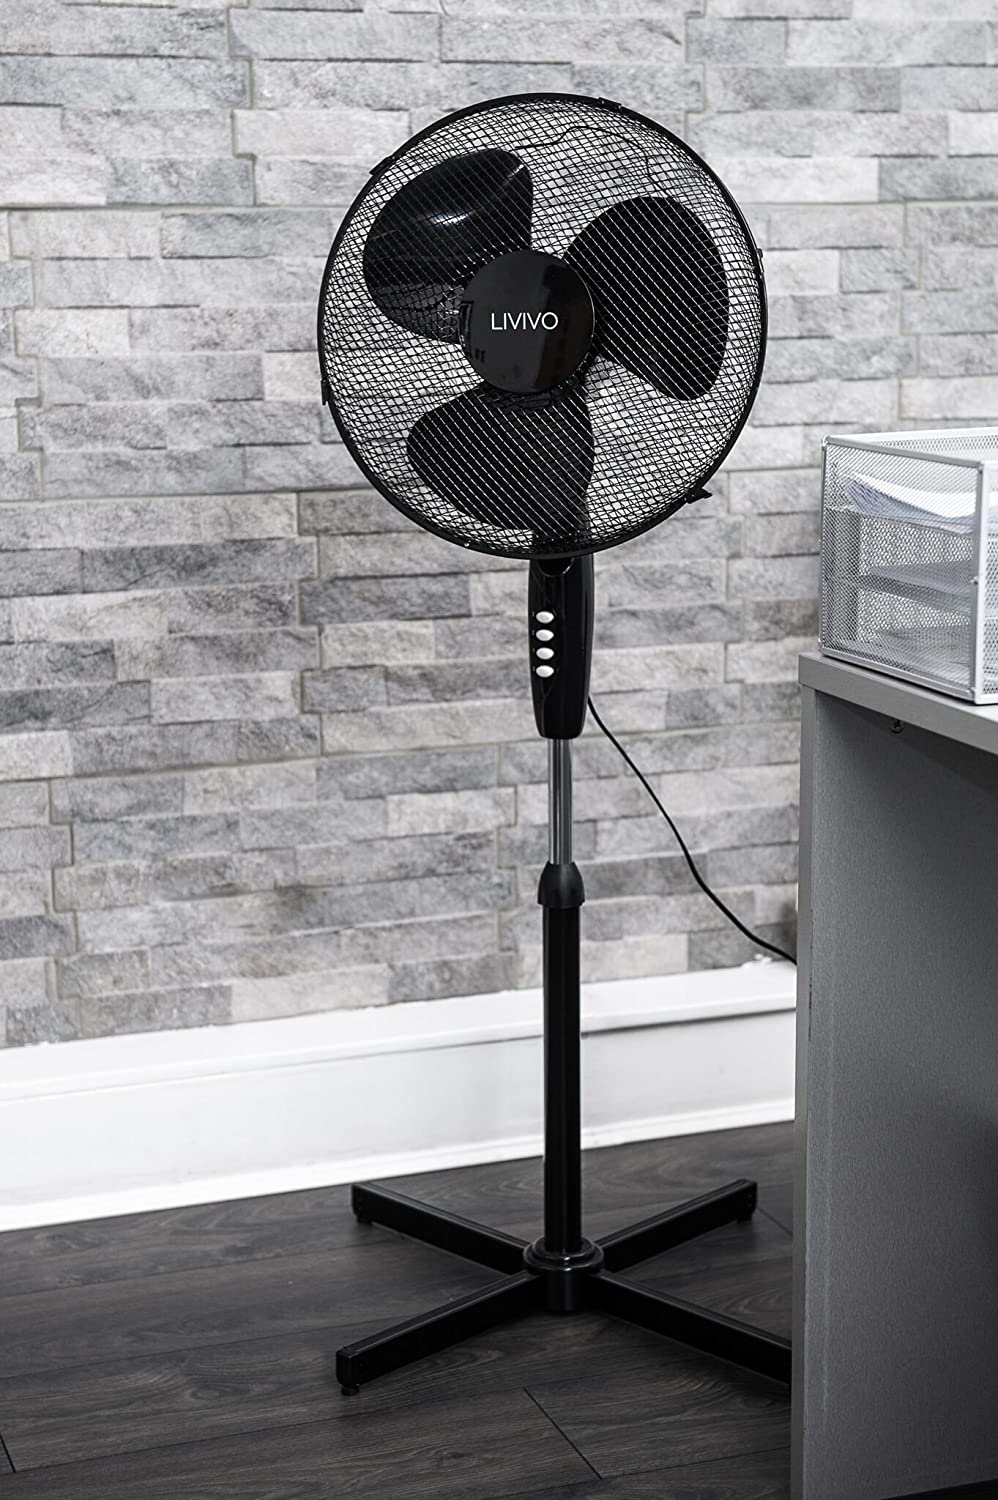 """Powerful Free Standing Oscillating and Tilting 45W Height Adjustable Rotating Stand Tower Fan Mesh Safety Grill LIVIVO Electric 16/"""" Pedestal Fan White"""